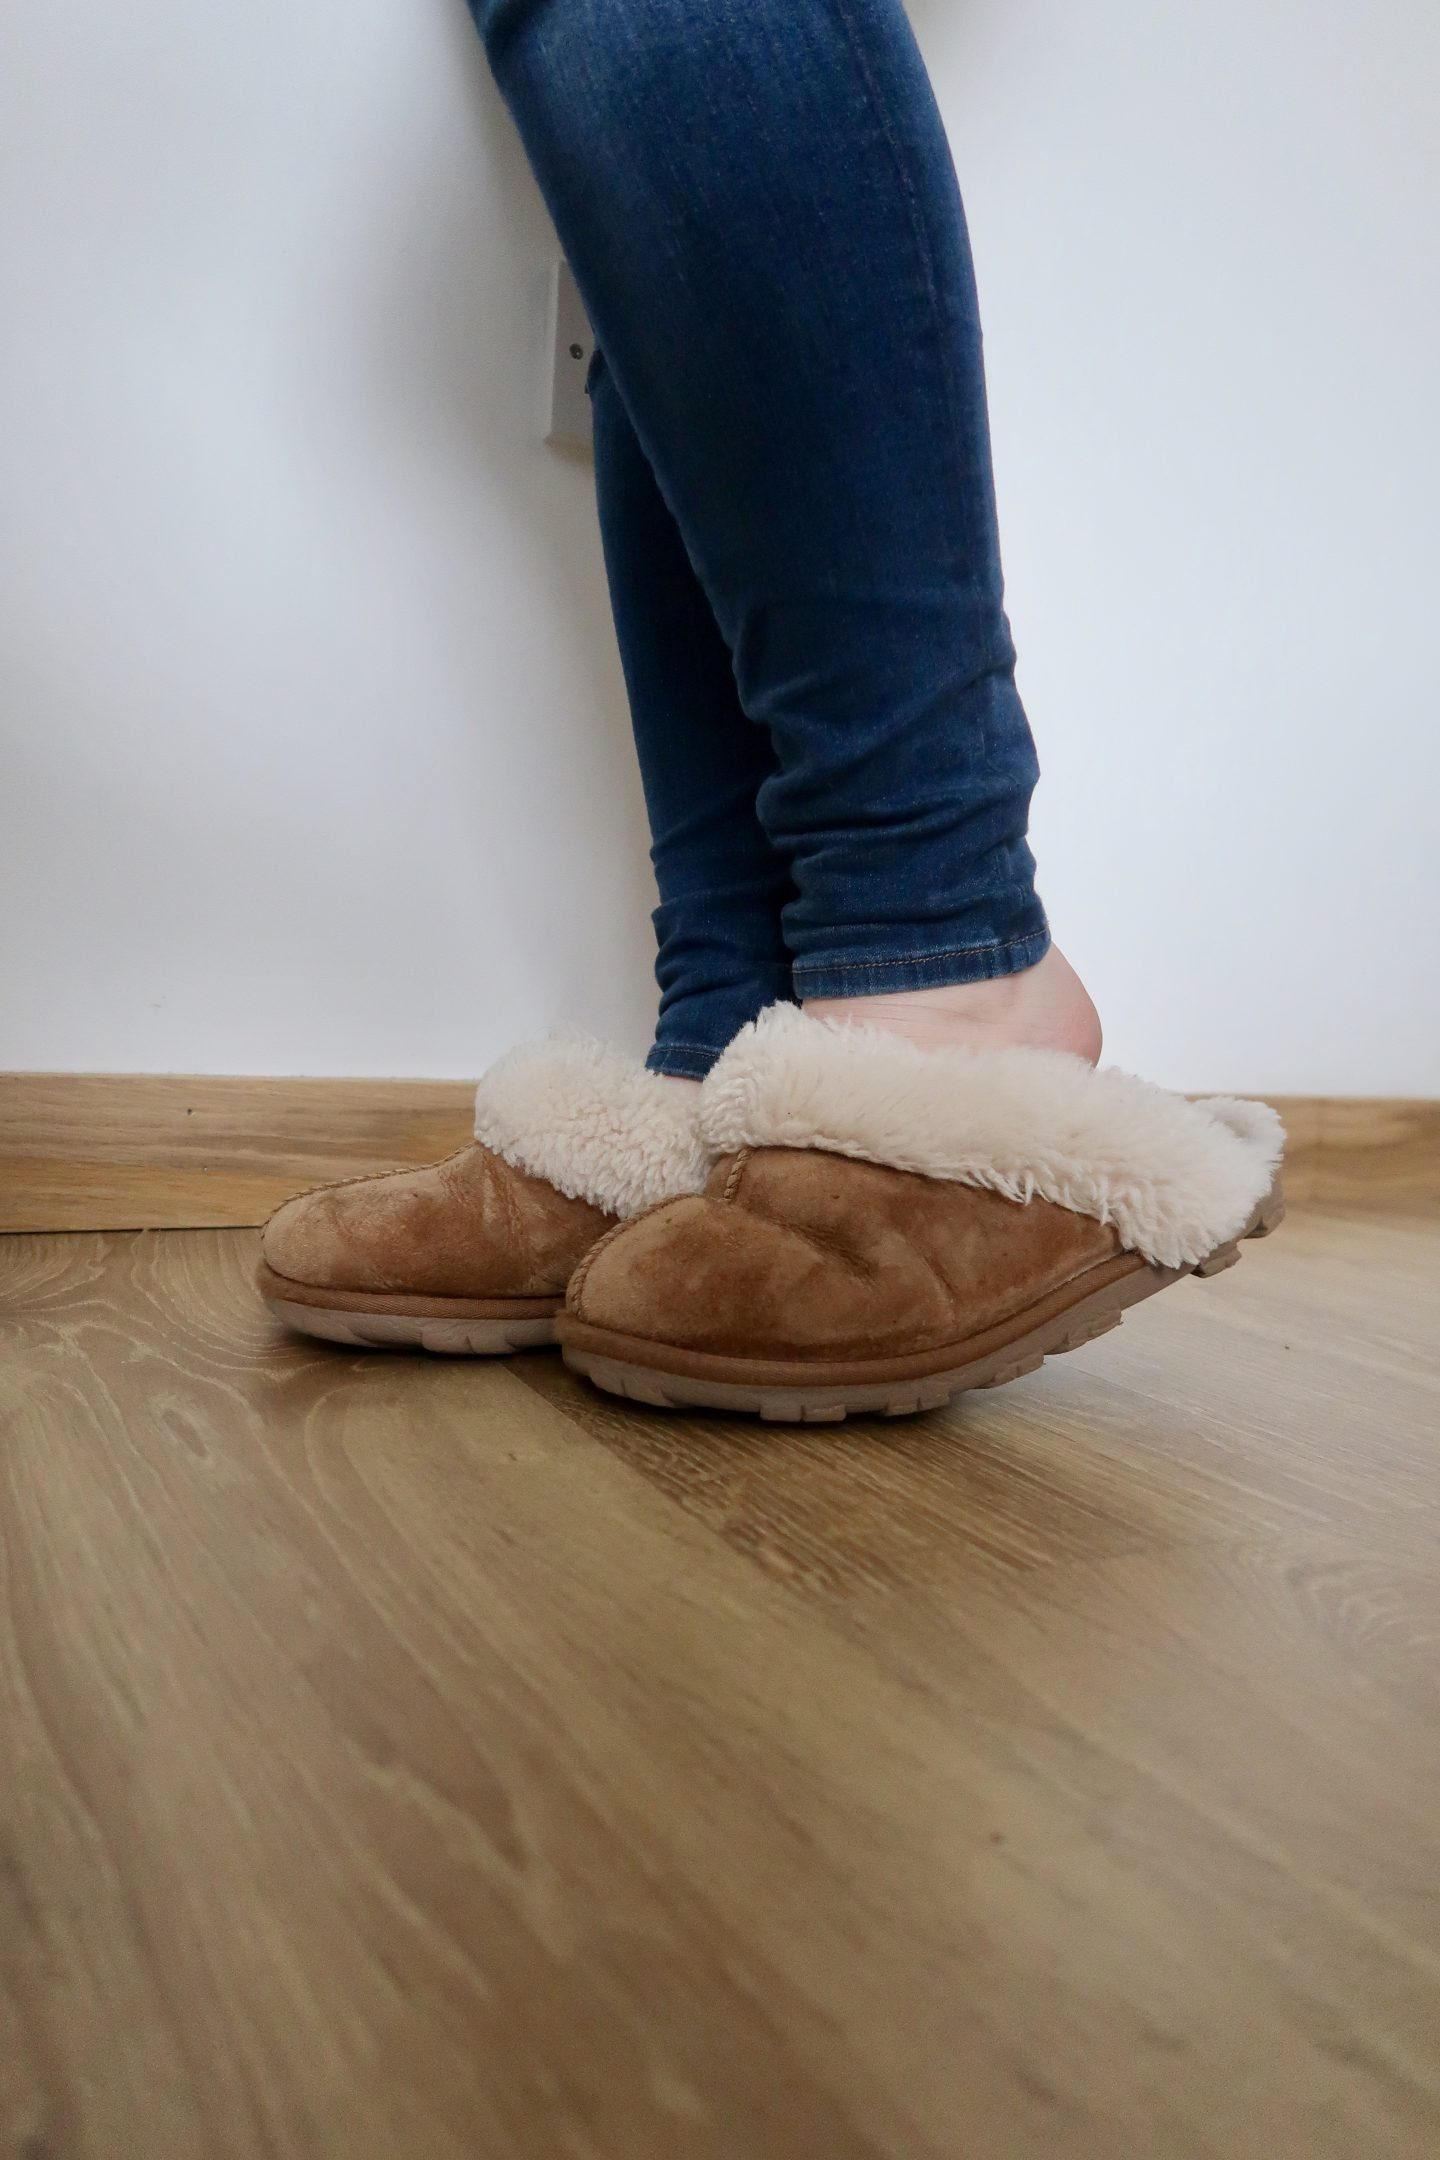 A pair of legs wearing jeans and slippers